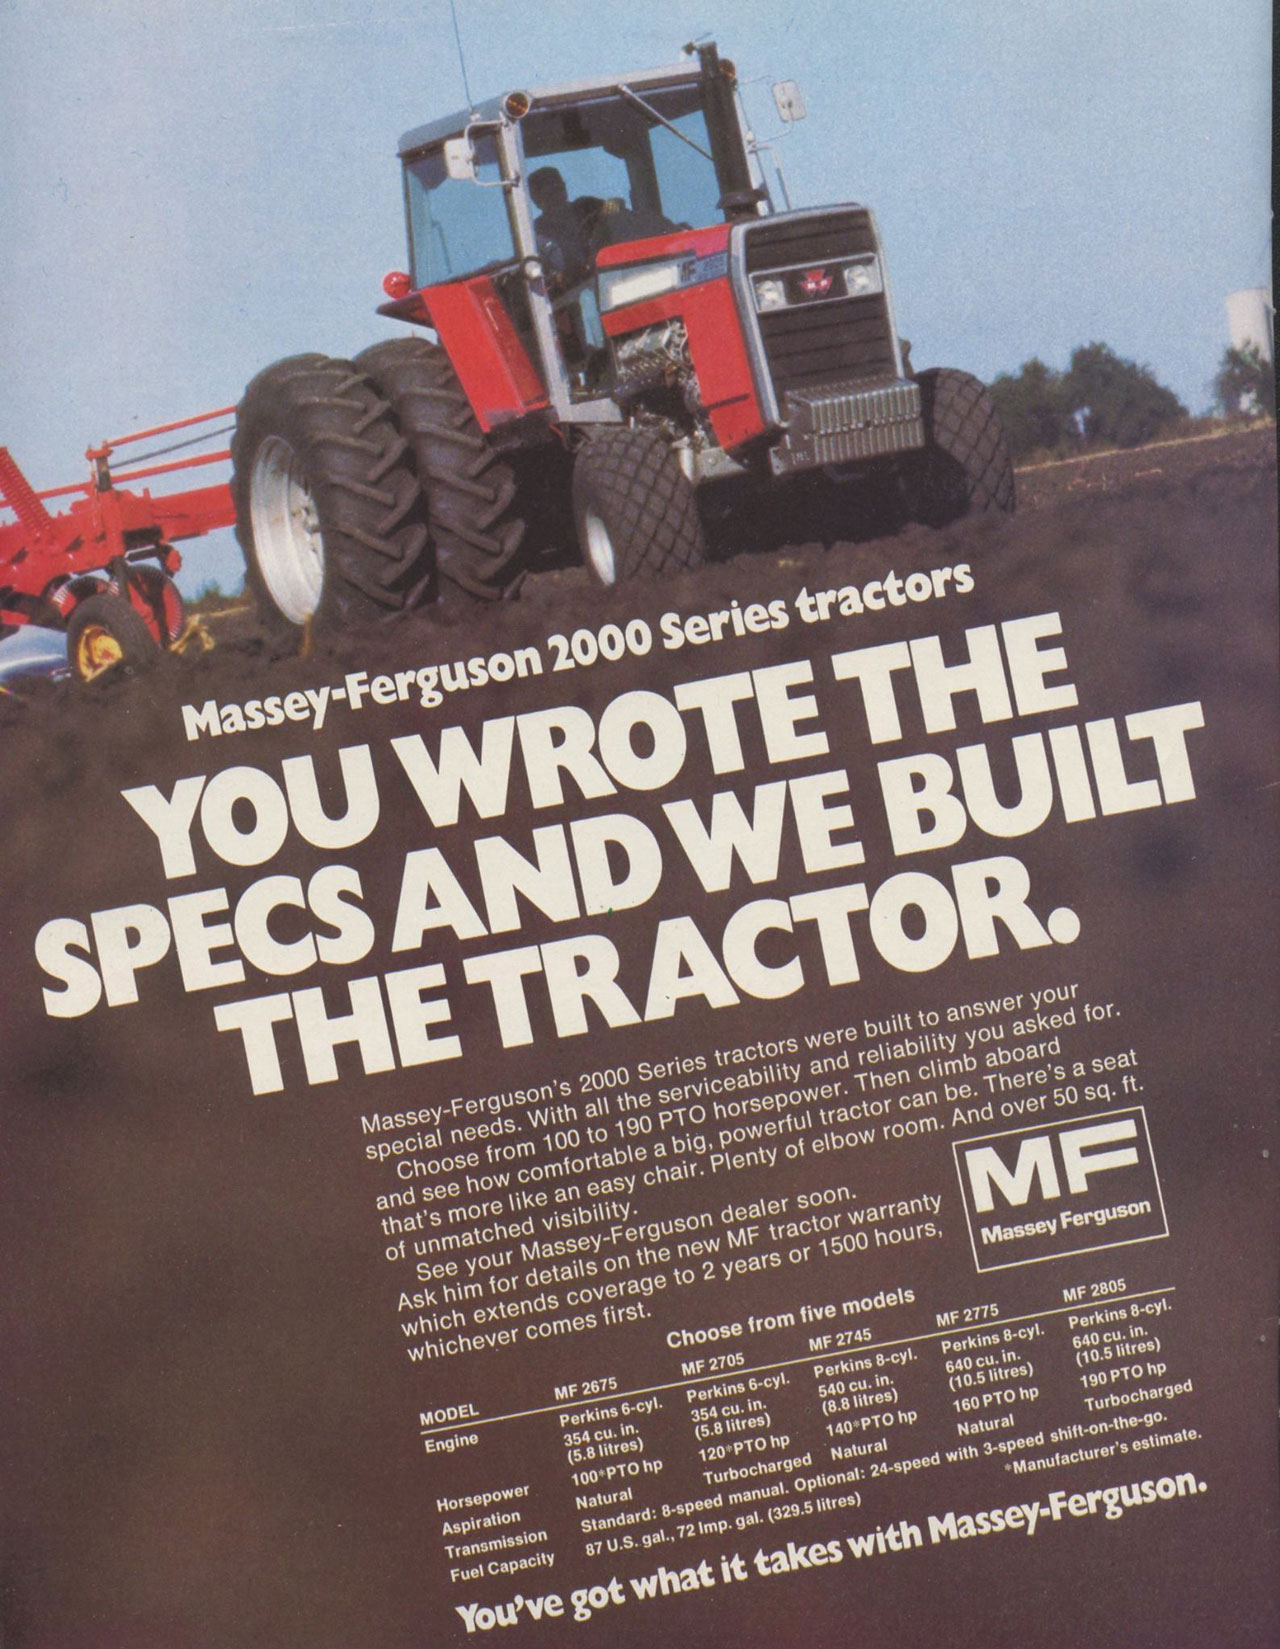 Massey-Ferguson 2000 Series tractors  YOU WROTE THE SPECS AND WE BUILT THE TRACTOR.  Massey-Ferguson's 2000 Series tractors were built to answer your special needs. With all the serviceability and reliability you asked for. Choose from 100 to 190 PTO horsepower. Then climb aboard and see how comfortable a big, powerful tractor can be. There's a seat that's more like an easy chair. Plenty of elbow room. And over 50 sq. ft. of unmatched visibility. See your Massey-Ferguson dealer soon. Ask him for details on the new MF tractor warranty which extends coverage to 2 years or 1500 hours, whichever comes first.  MF  Massey Ferguson  Choose from five models MODEL MF 2675 MF 2705 MF 2745 MF 2775  MF 2805  Engine Perkins 6-cyl. Perkins 6-cyl. Perkins 8-cyl. Perkins 8-cyl. Perkins 8-cyl. 354 cu. in. 354 cu. in. 540 cu. in. 640 cu. in. 640 cu. in. (5.8 litres) (5.8 litres) (8.8 litres) (10.5 litres) (10.5 litres) Horsepower 100 PTO hp 120 PTO hp 140 PTO hp 160 PTO hp 190 PTO hp Aspiration Natural Turbocharged Natural Natural Turbocharged Transmission Standard: 8-speed manual. Optional: 24-speed with 3-speed shift-on-the-go. Fuel Capacity 87 U.S. gal., 72 Imp. gal. (329.5 litres) Manufacturer's estimate.  You've got what it takes with Massey-Ferguson.